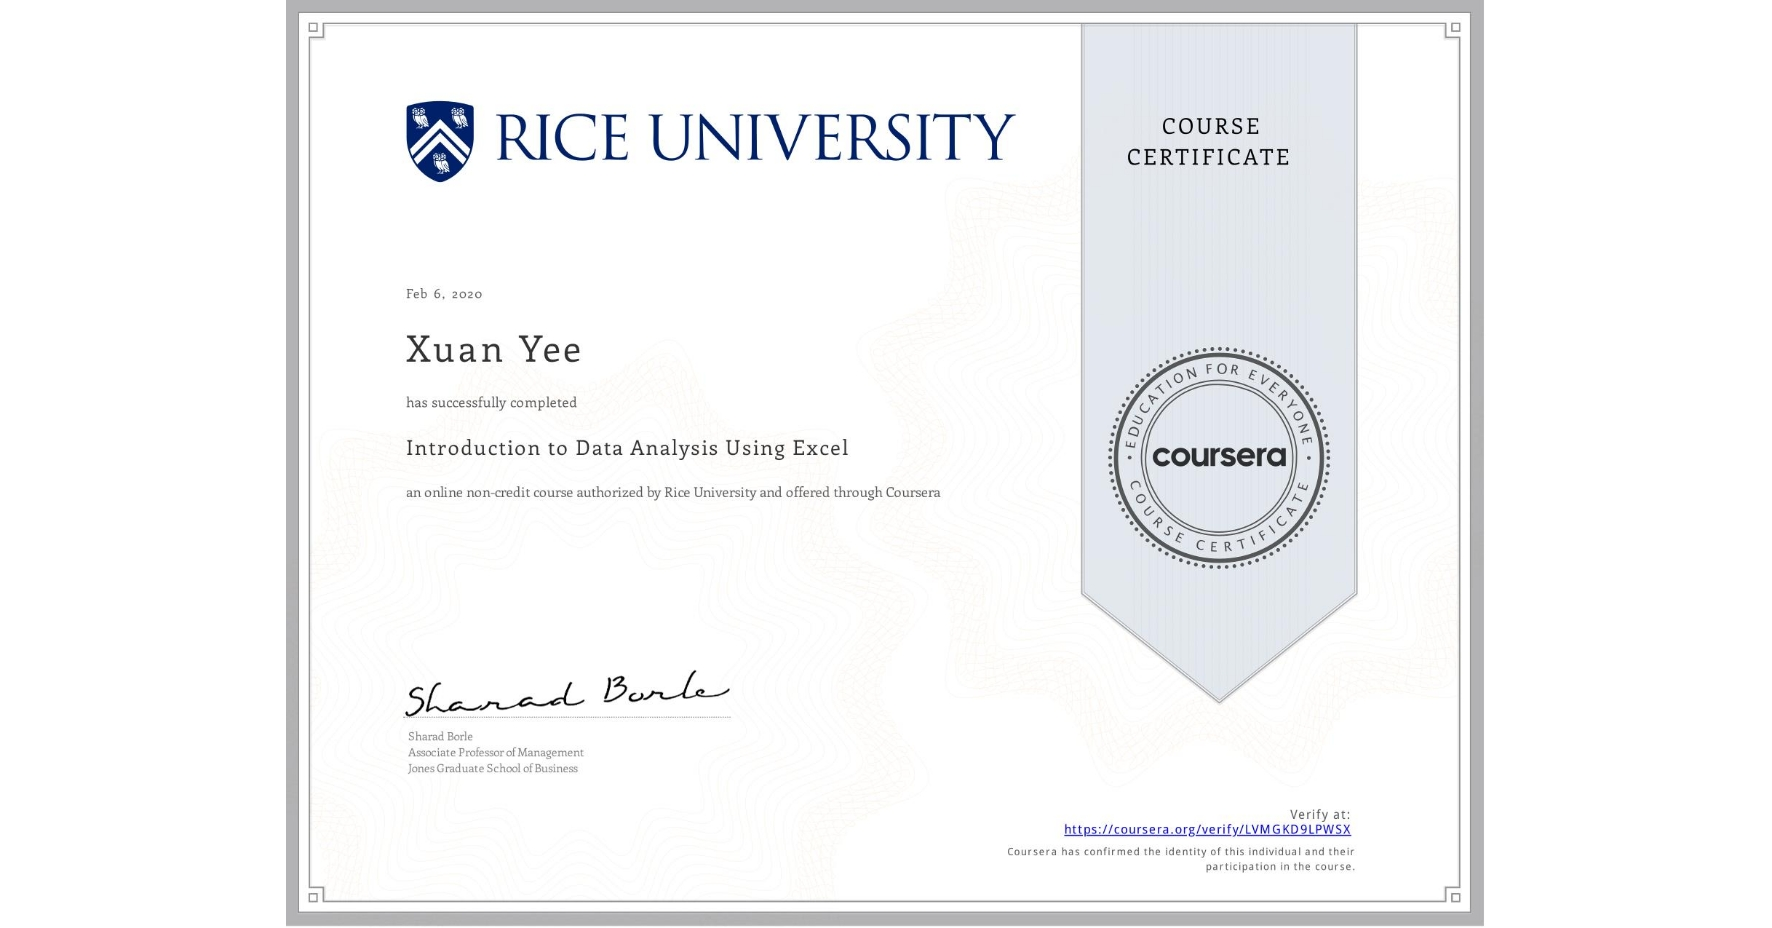 View certificate for Xuan Yee, Introduction to Data Analysis Using Excel, an online non-credit course authorized by Rice University and offered through Coursera